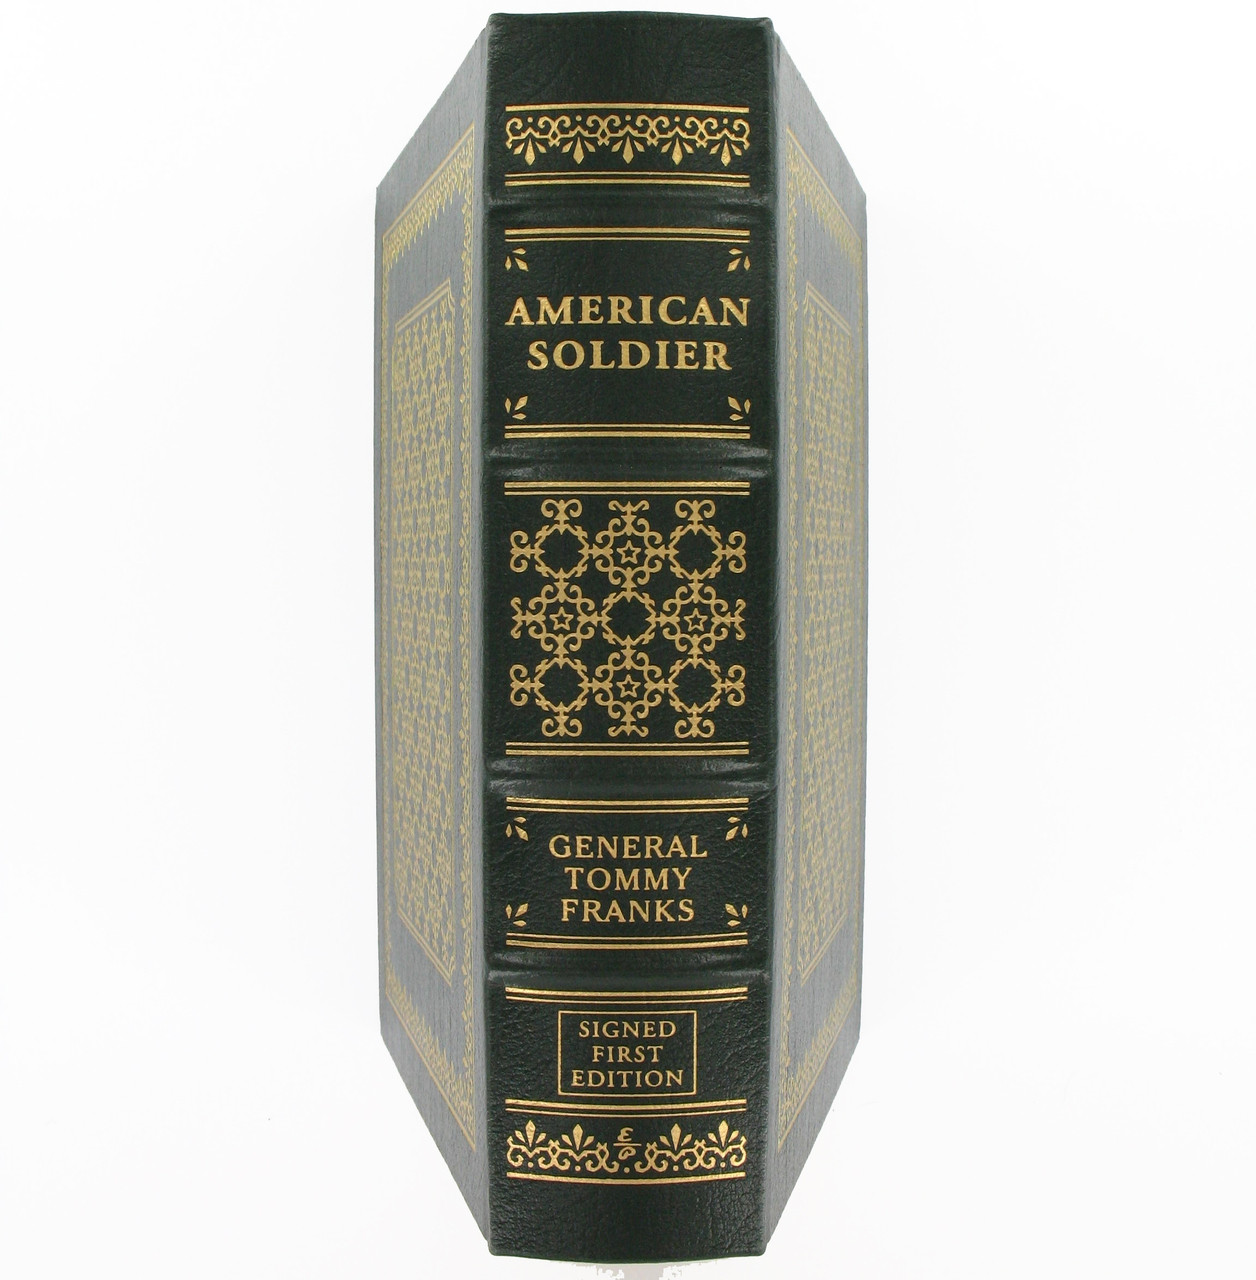 American Soldier by General Tommy Franks, Signed 1st Edition, Easton Press